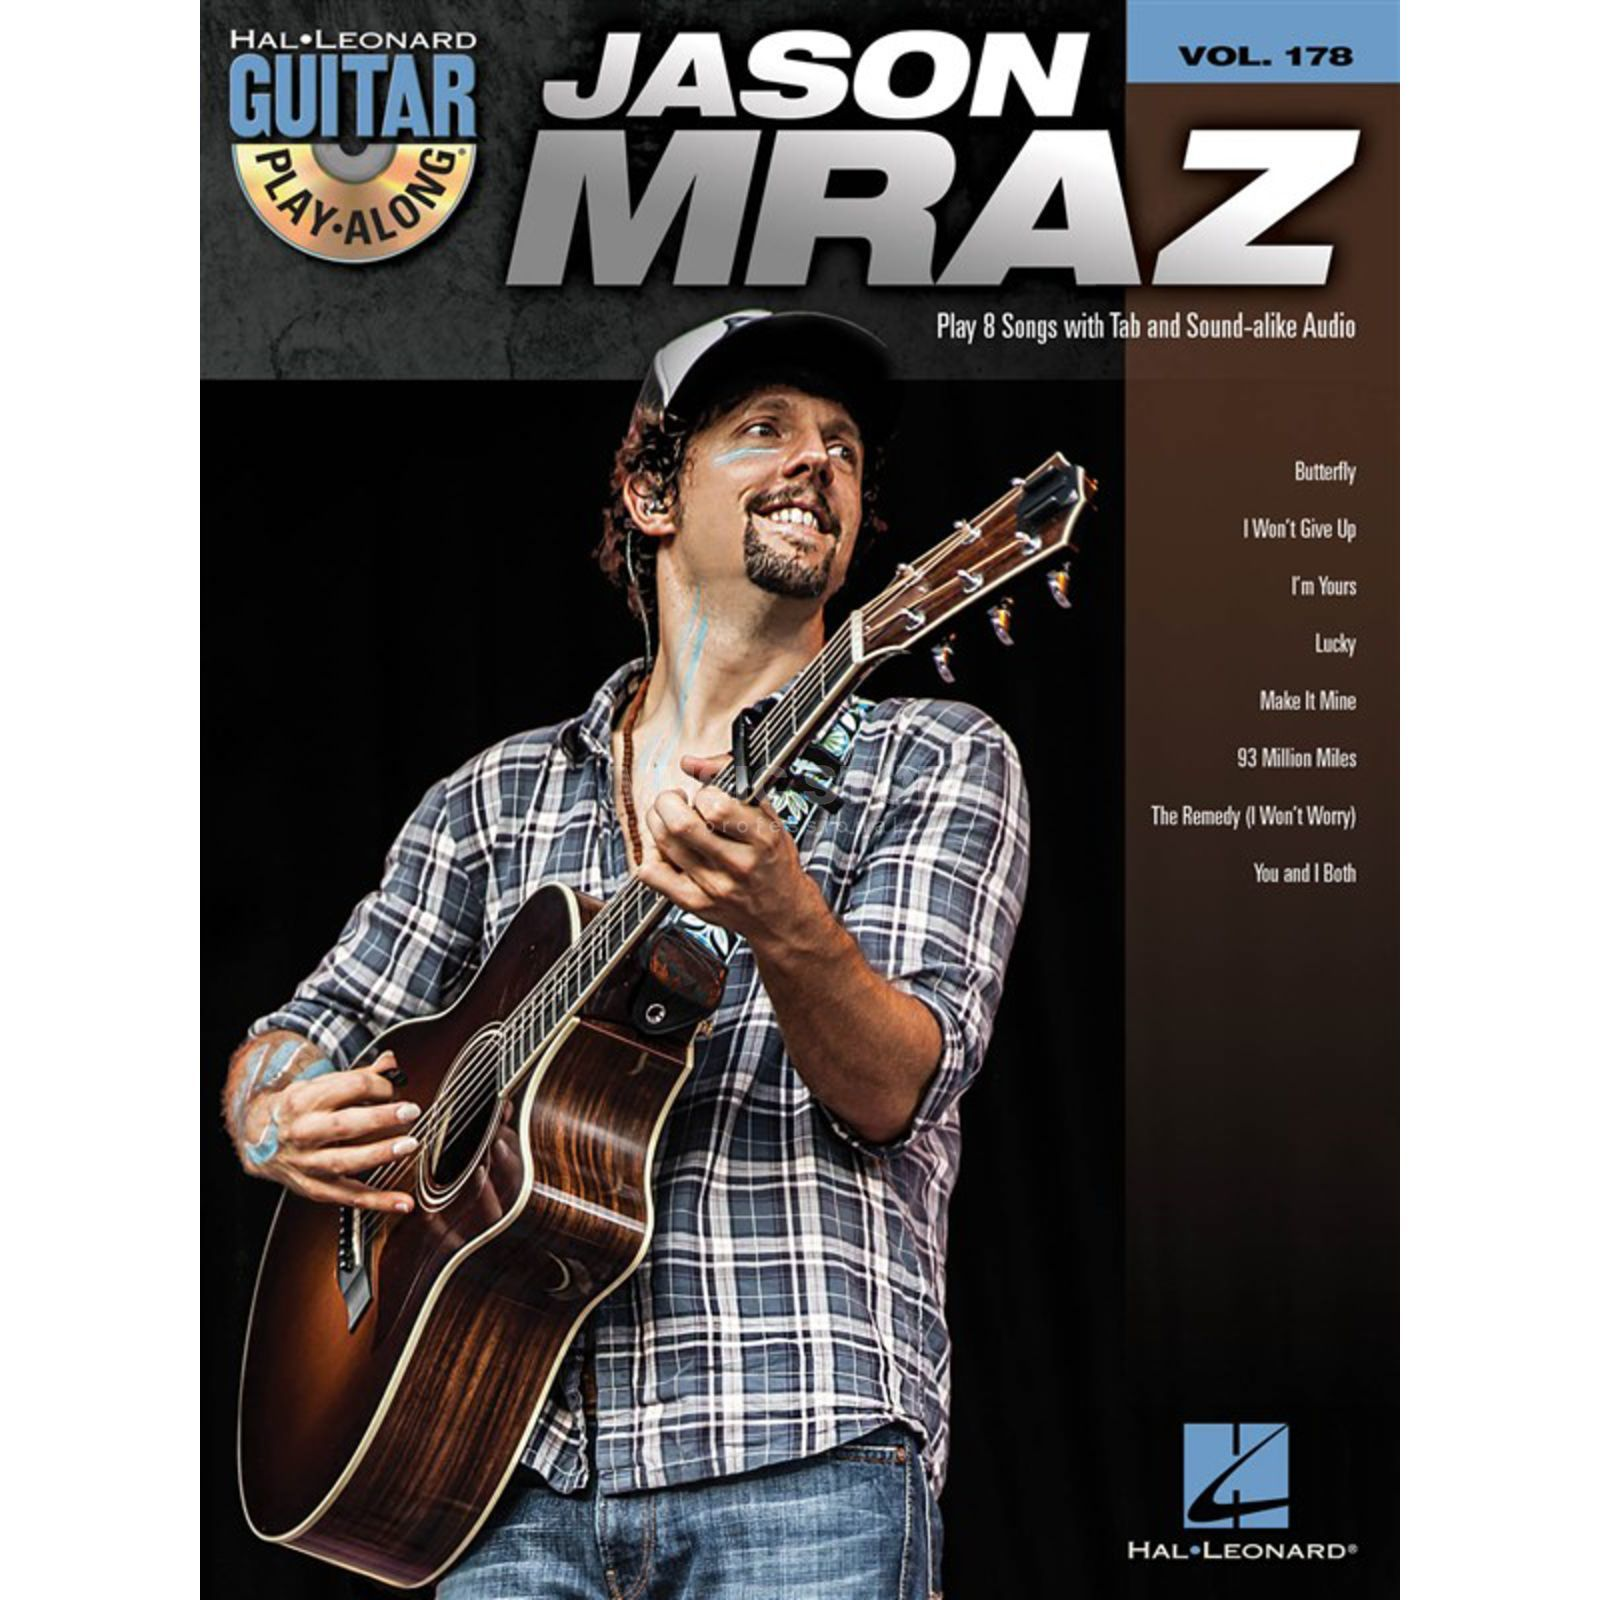 Hal Leonard Guitar Play-Along: Jason Mraz Vol. 178, TAB und CD Produktbild